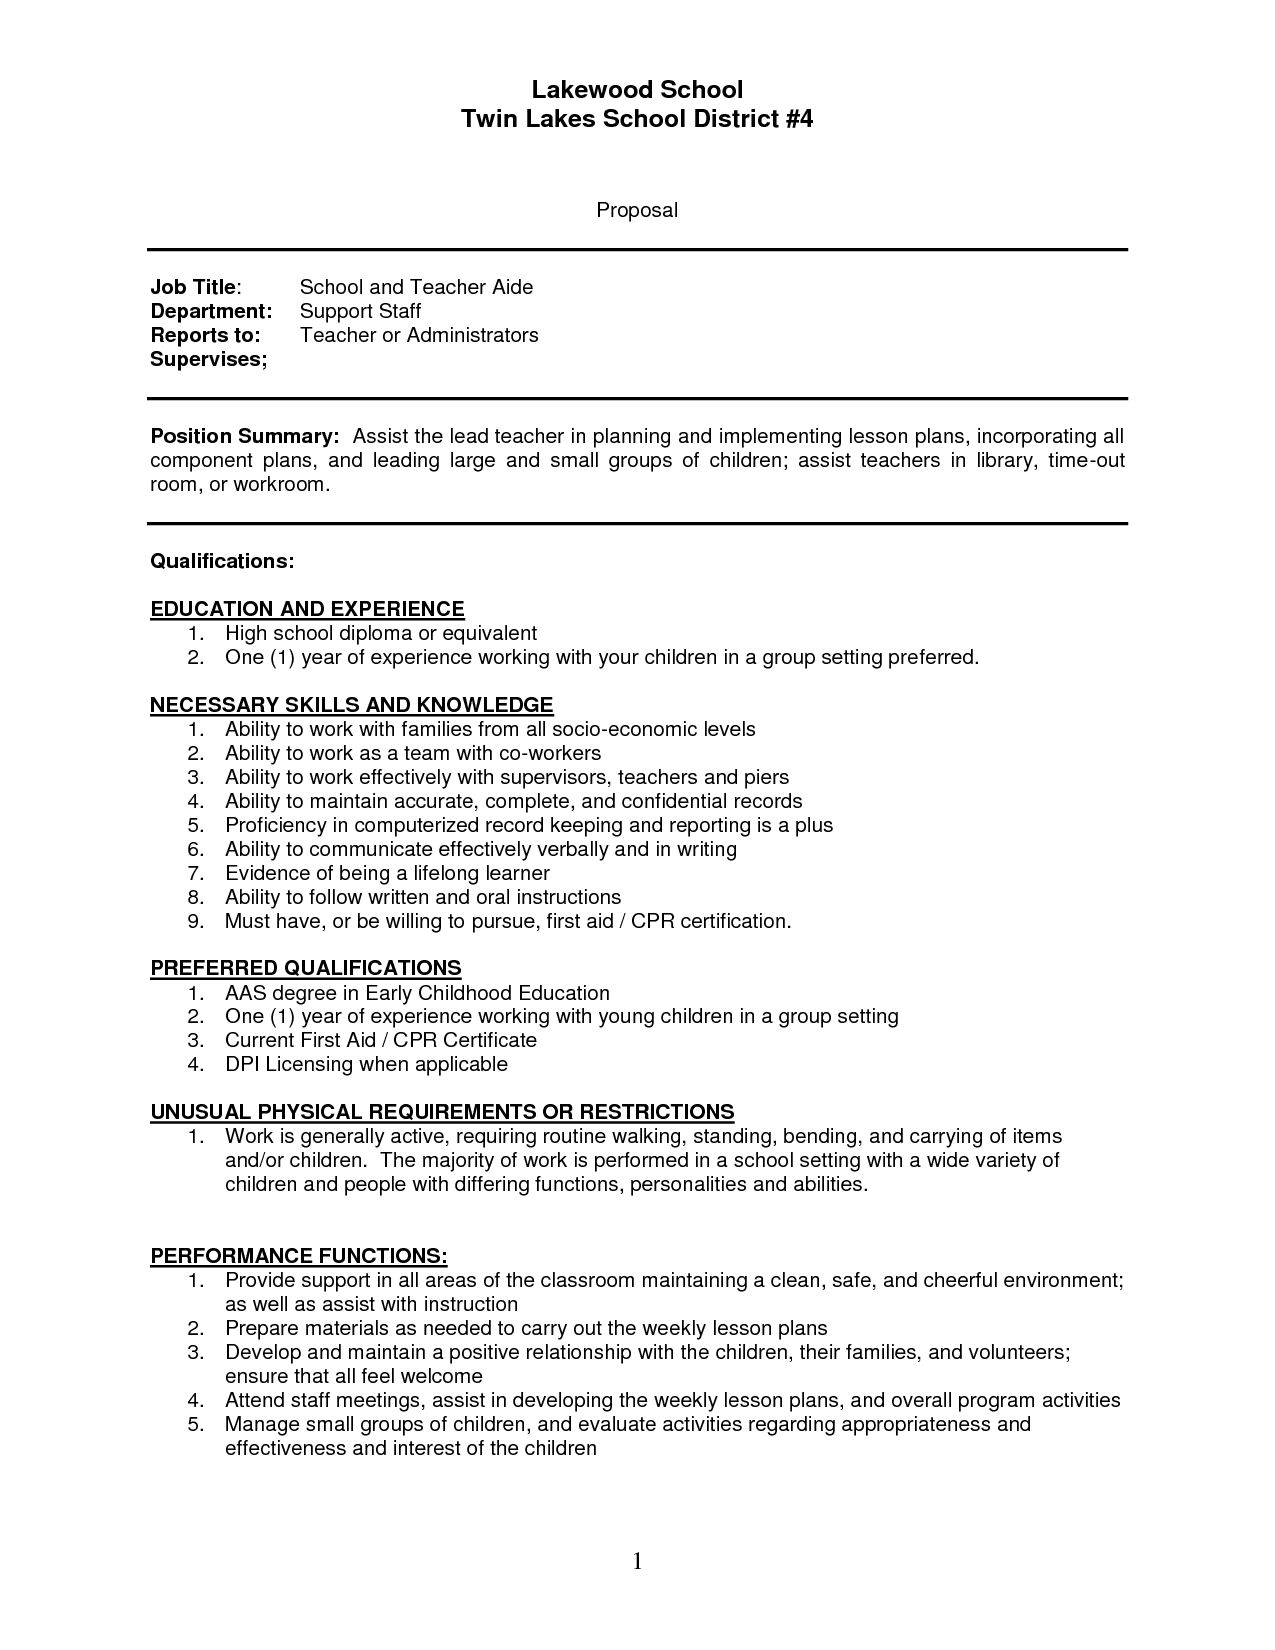 Teaching Sample Resume Sample Resume Teachers Aide Assistant Cover Letter Teacher Sap .